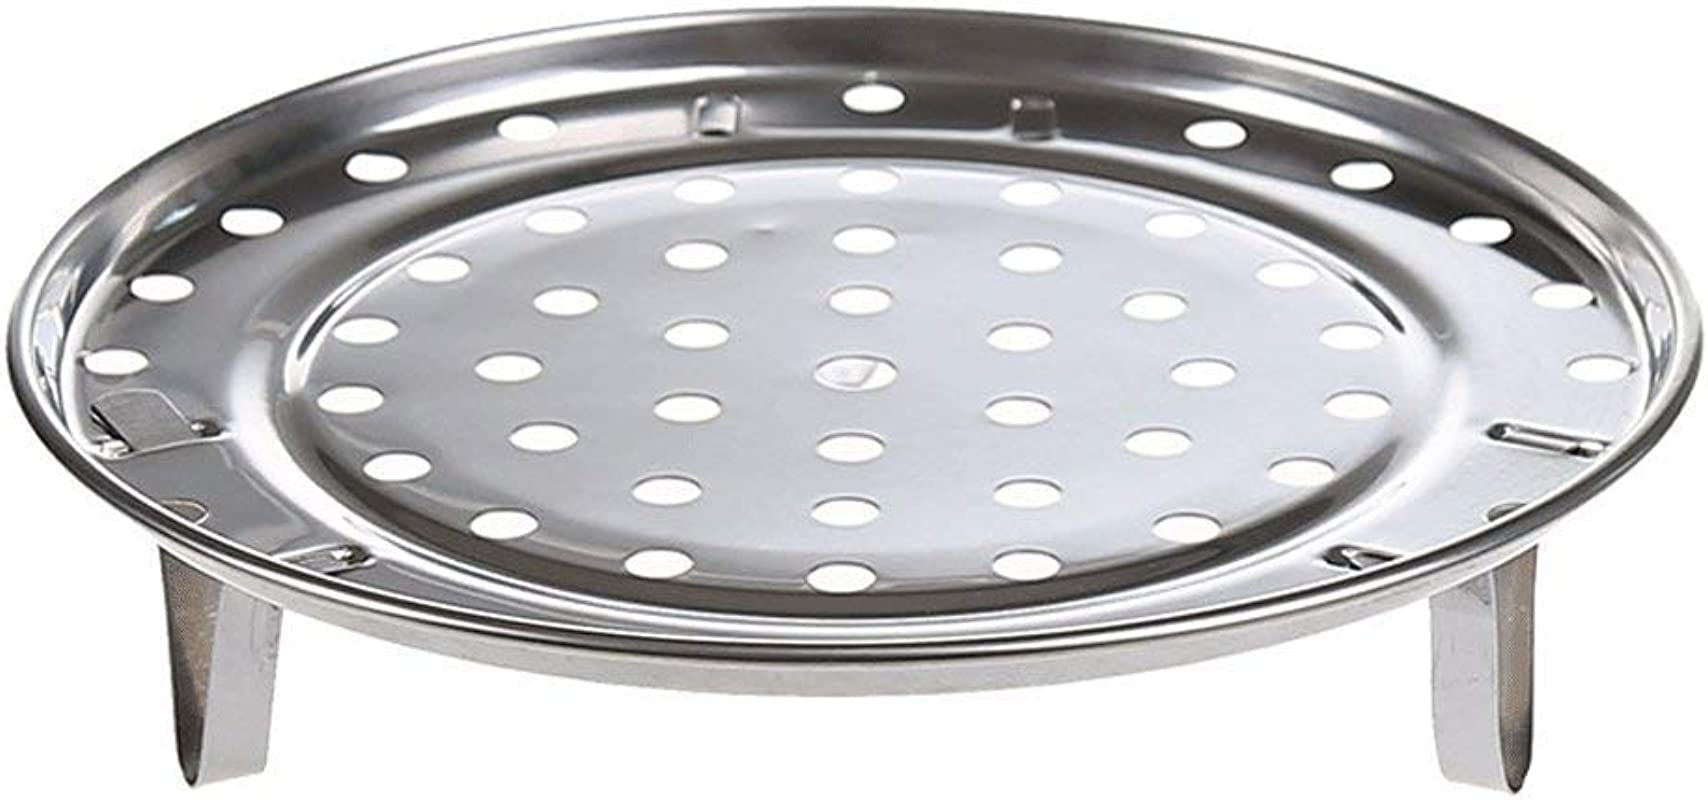 Stainless Steel Steaming Steamer Rack With Removable Legs For Instant Pot 11inch